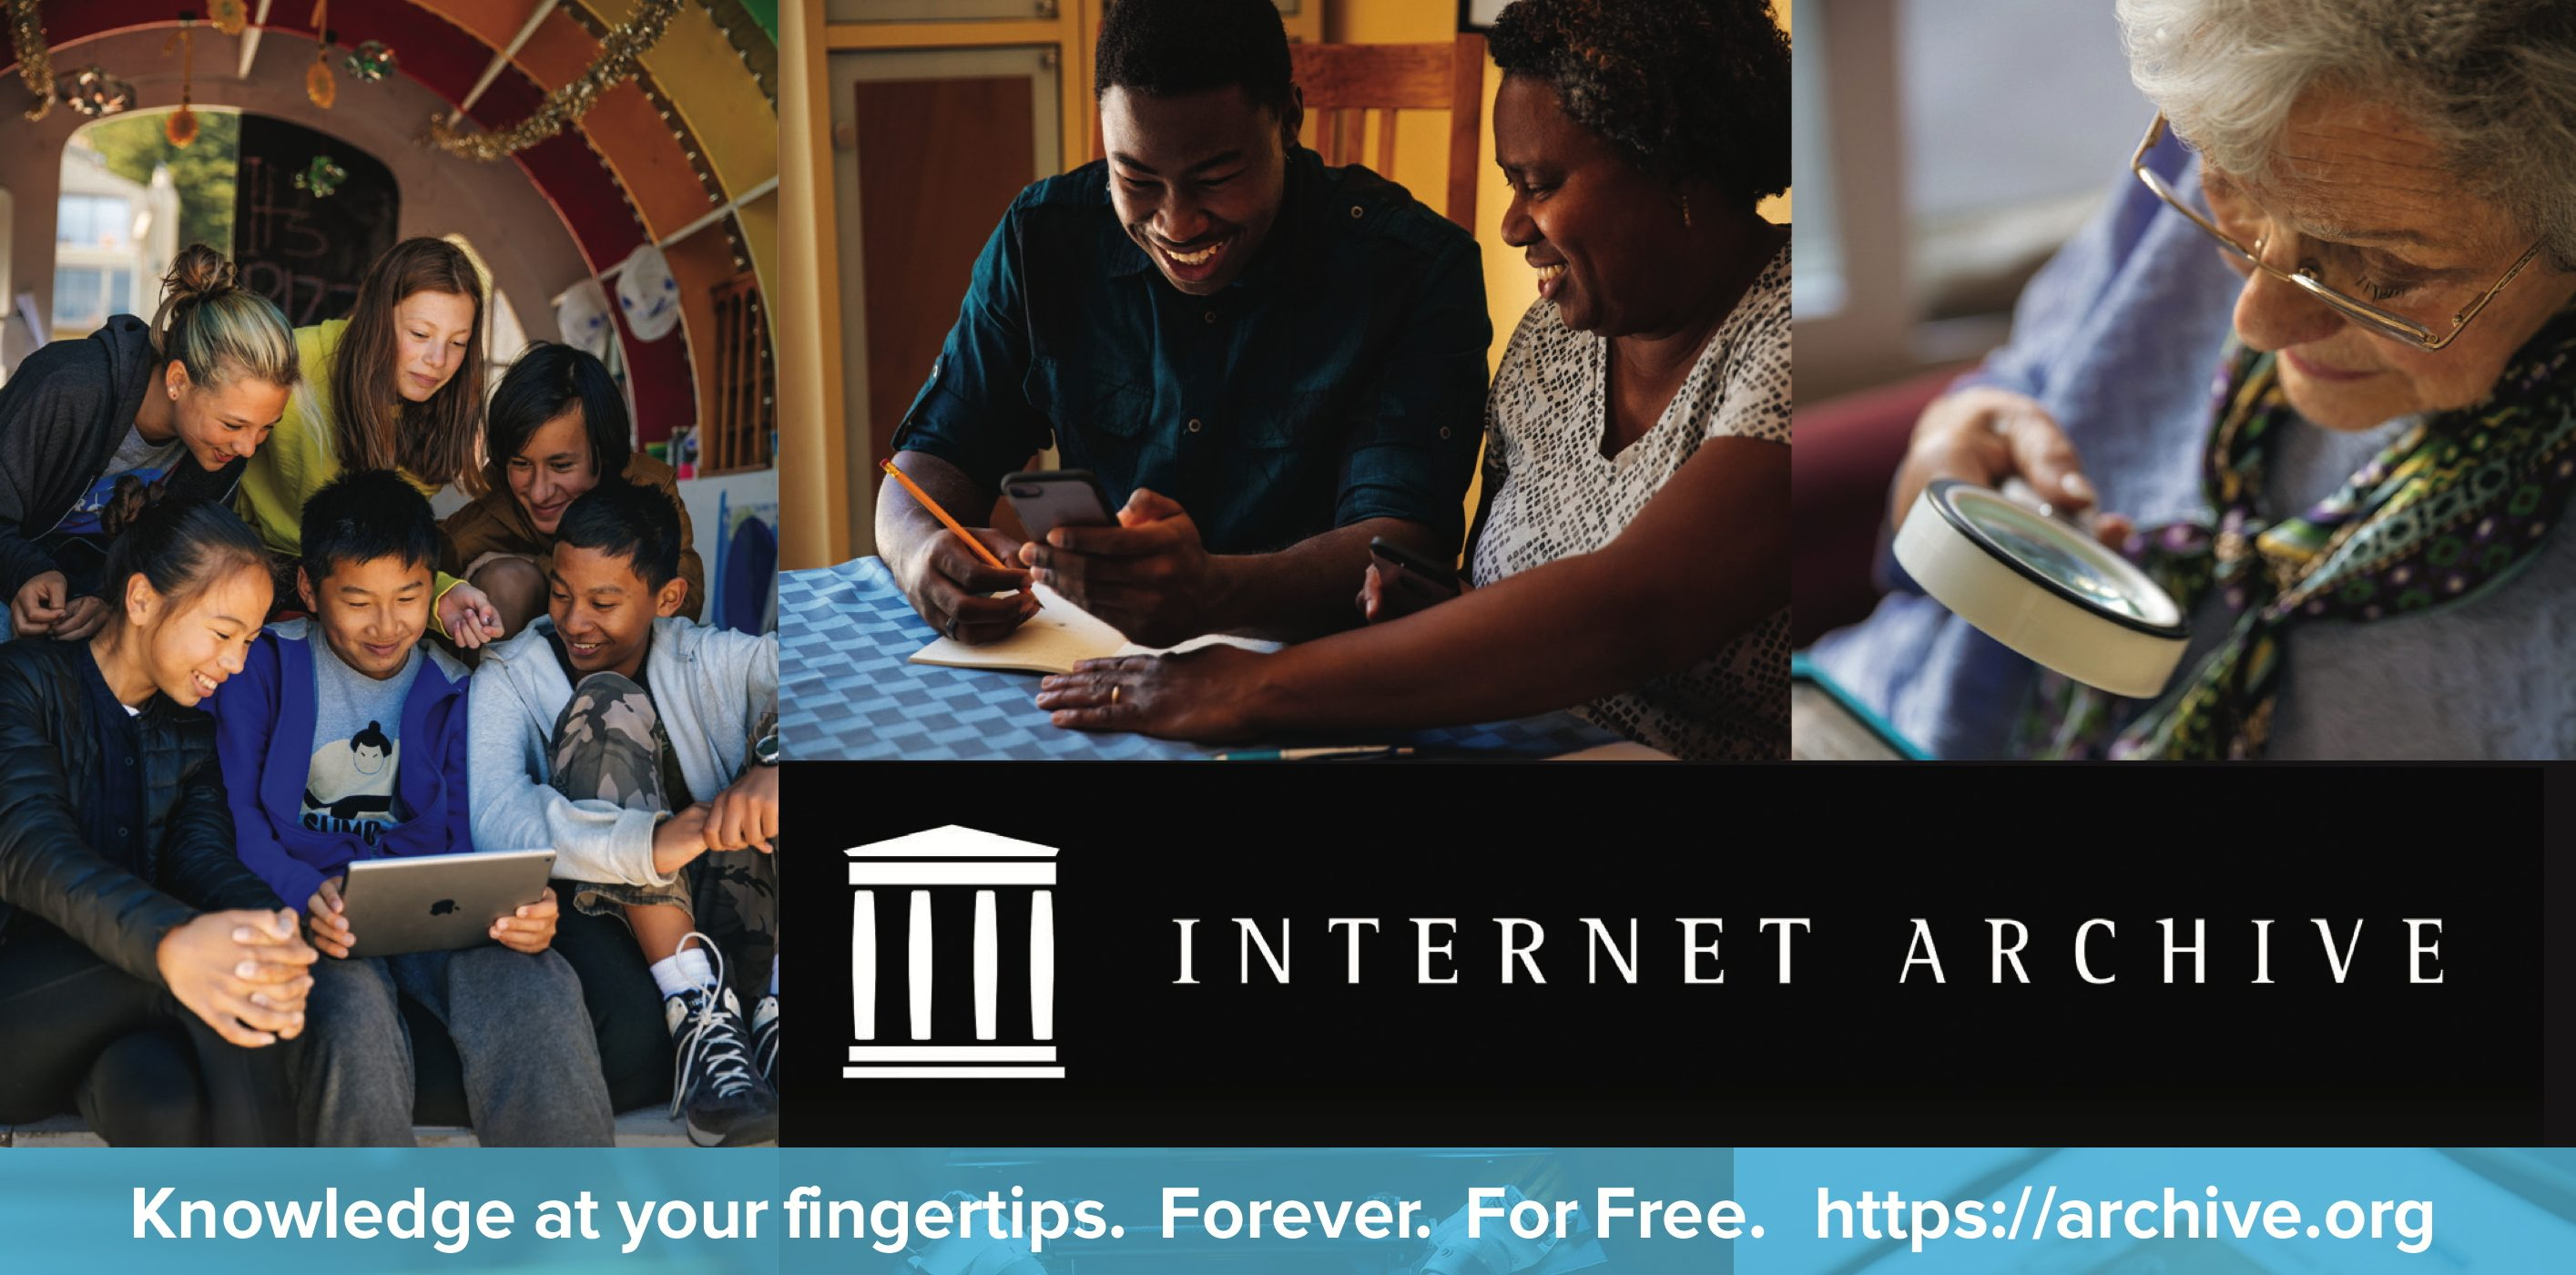 10 Ways To Explore The Internet Archive For Free | Internet Archive